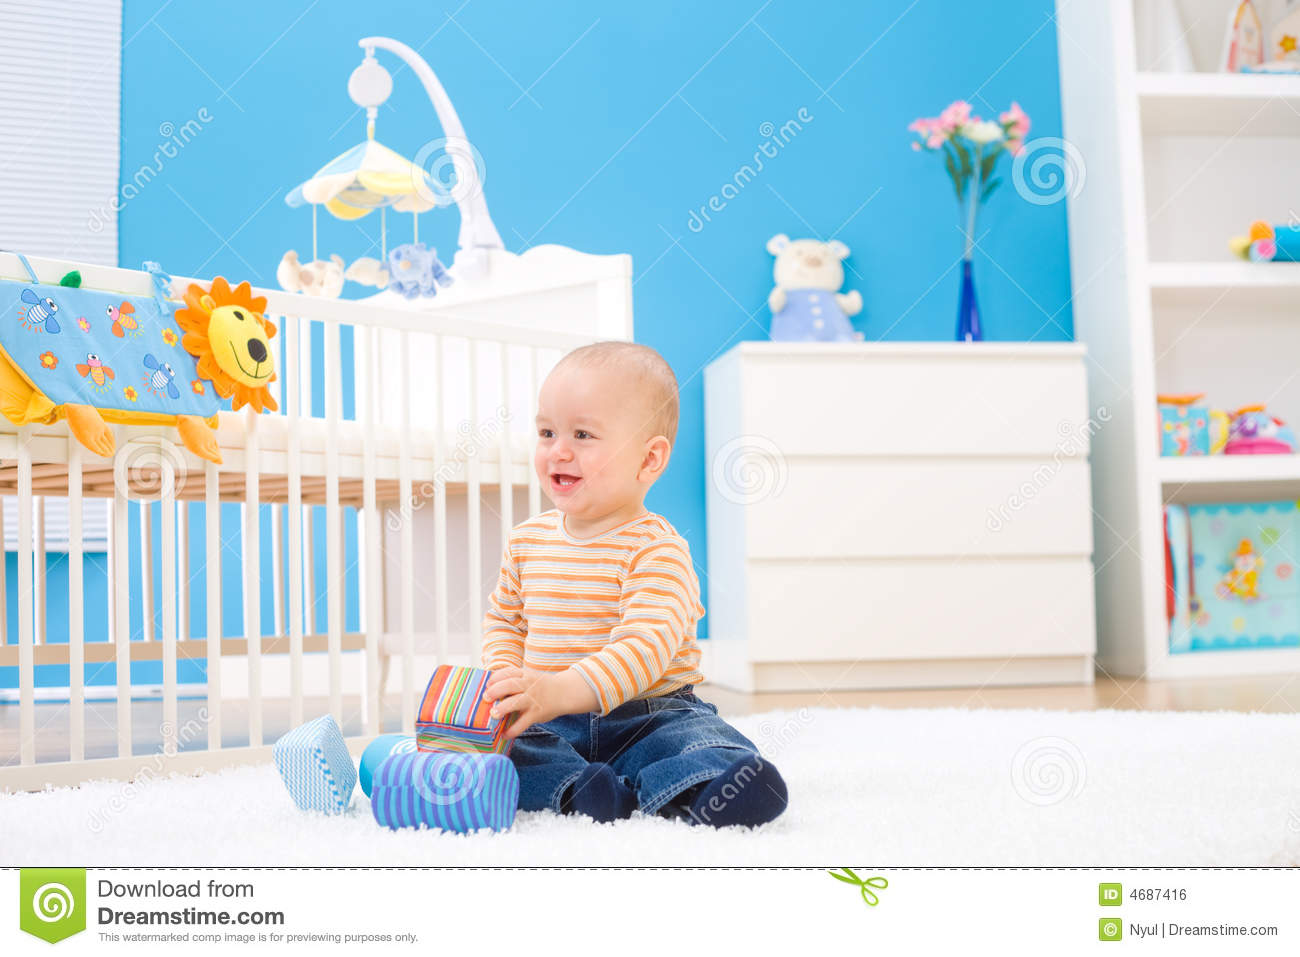 Happy baby playing indoor